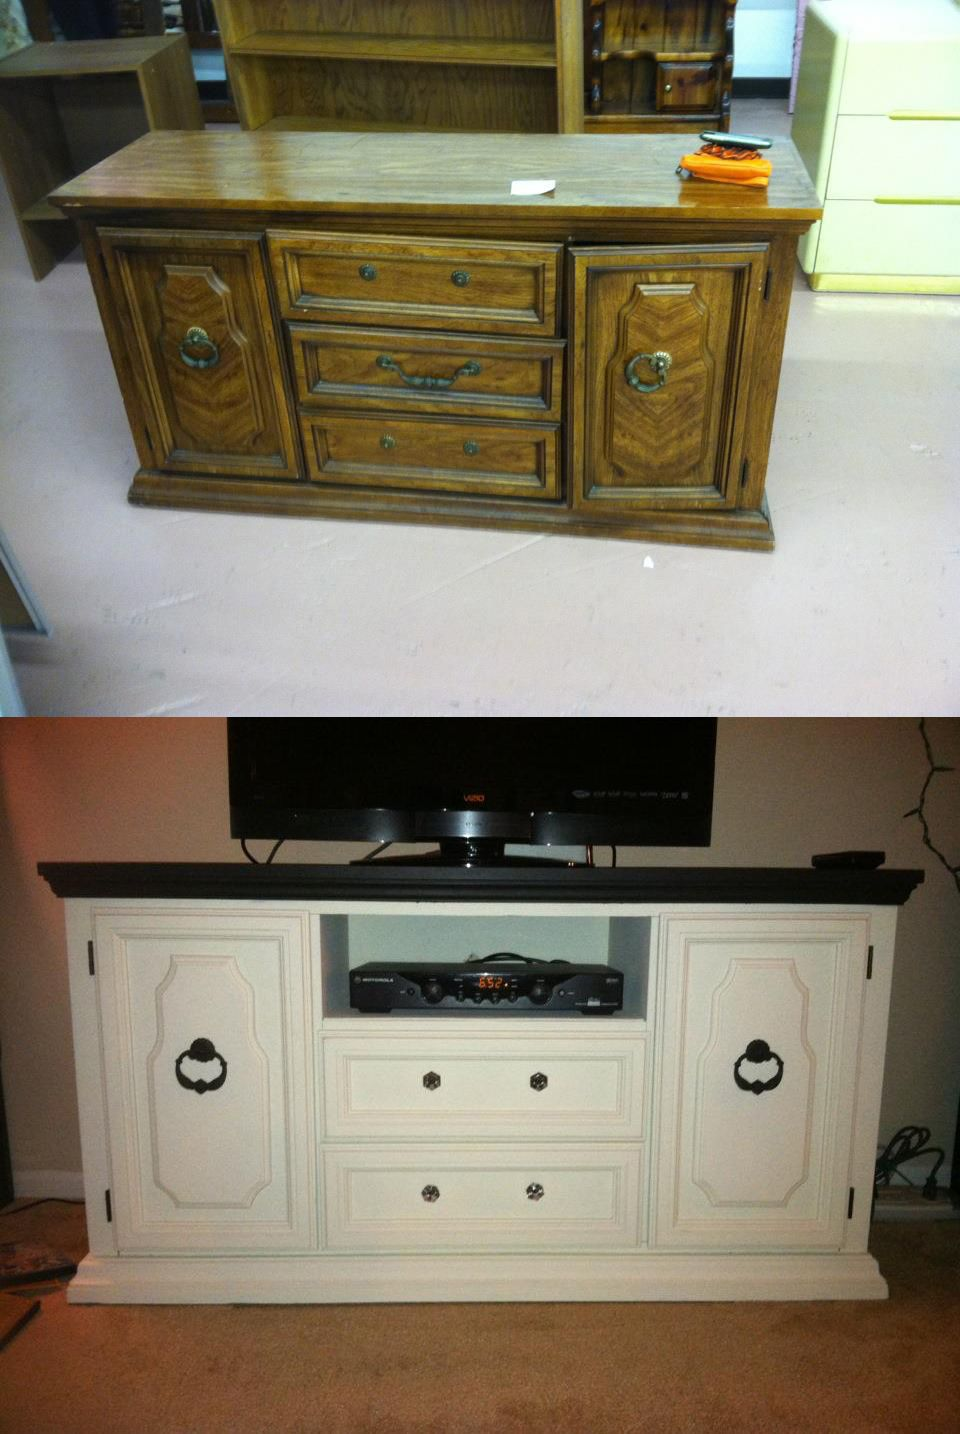 weekends ve for entertainment stand new dresser been only but past wanted well my so miscellaneous over i our blog diy the projects few not to home a tv searching